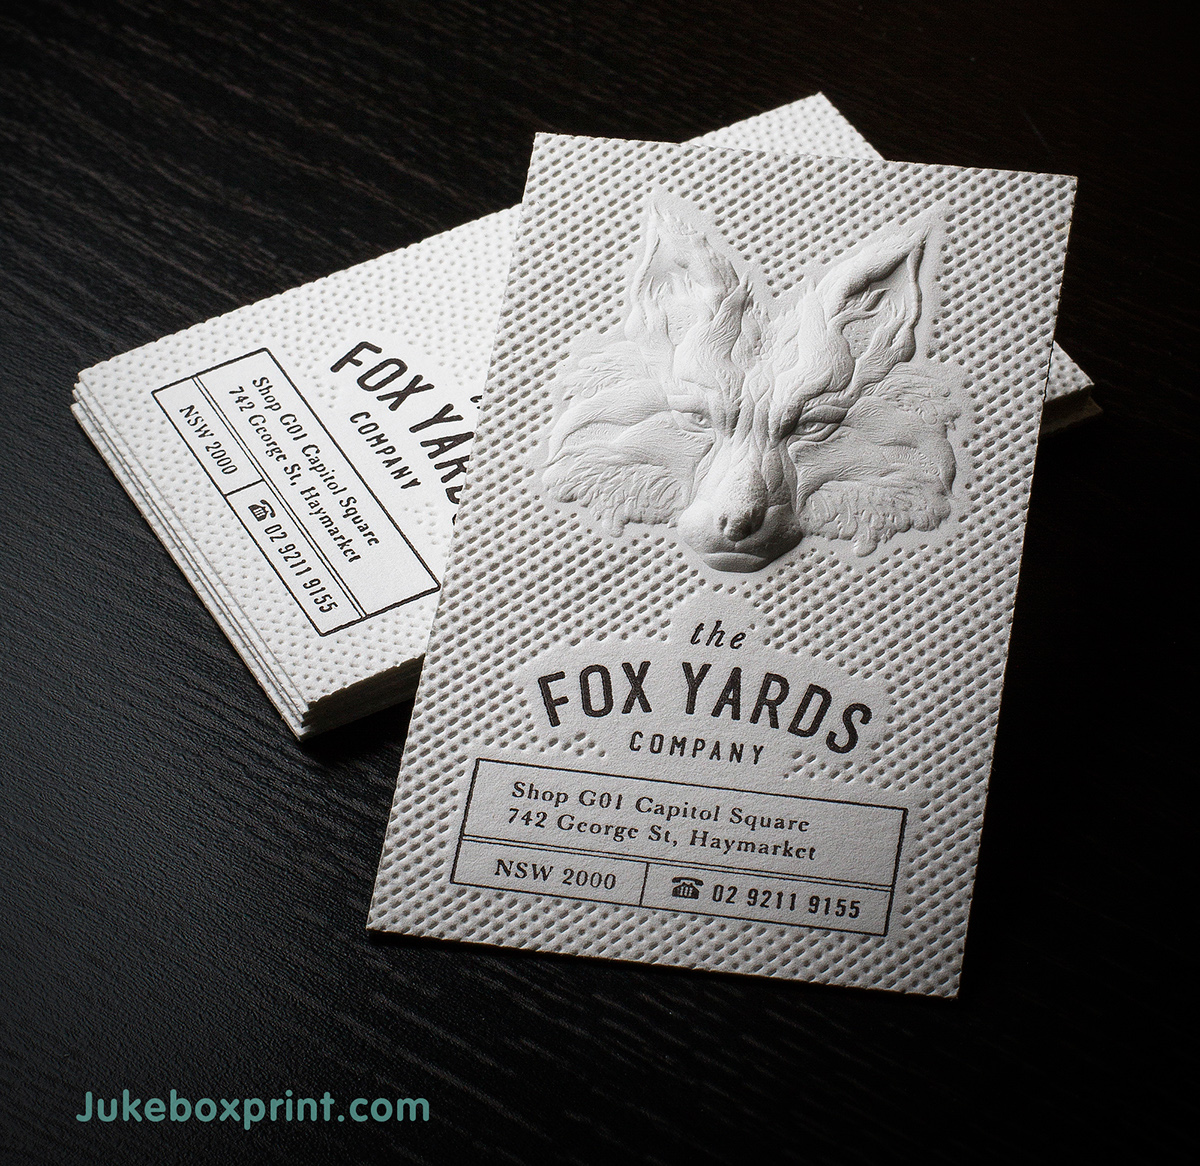 3D Embossed Business Cards produced with Letterpress on Behance